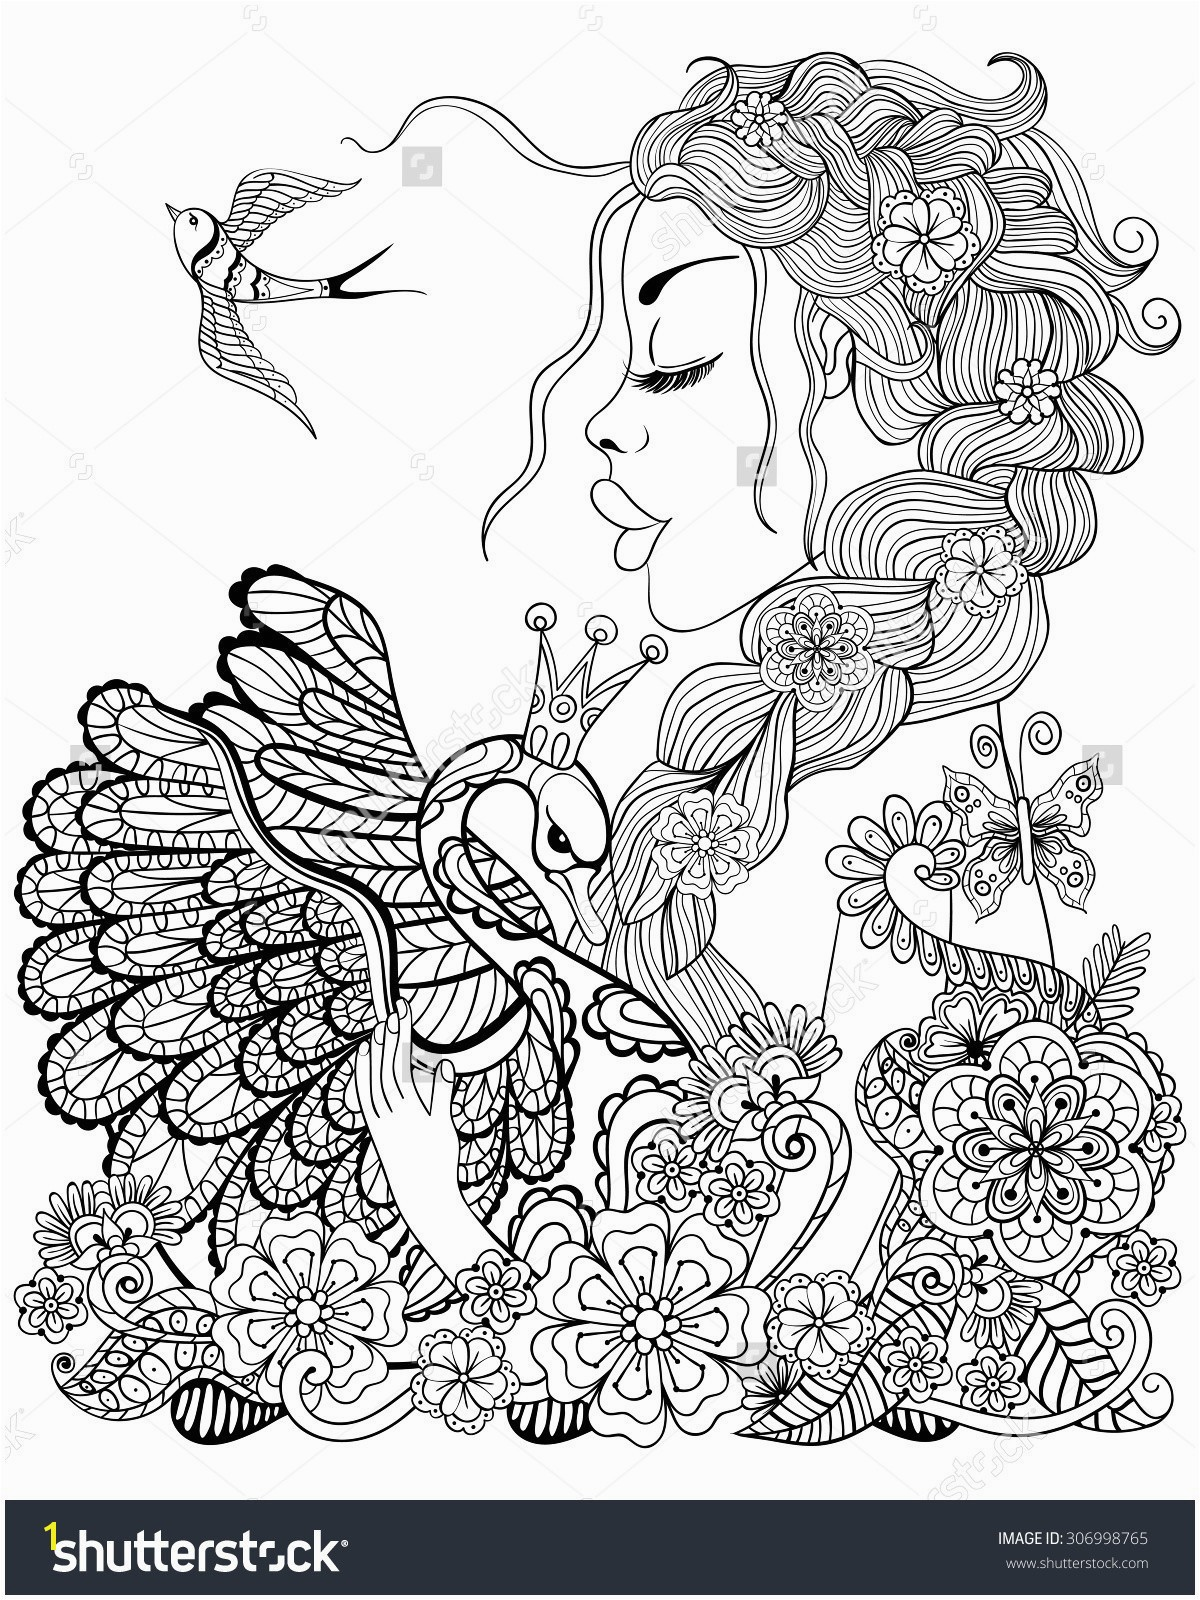 Coloring Pages for Girls A Coloring Page Best Media Cache Ec0 Pinimg 736x 9f 5b 0d